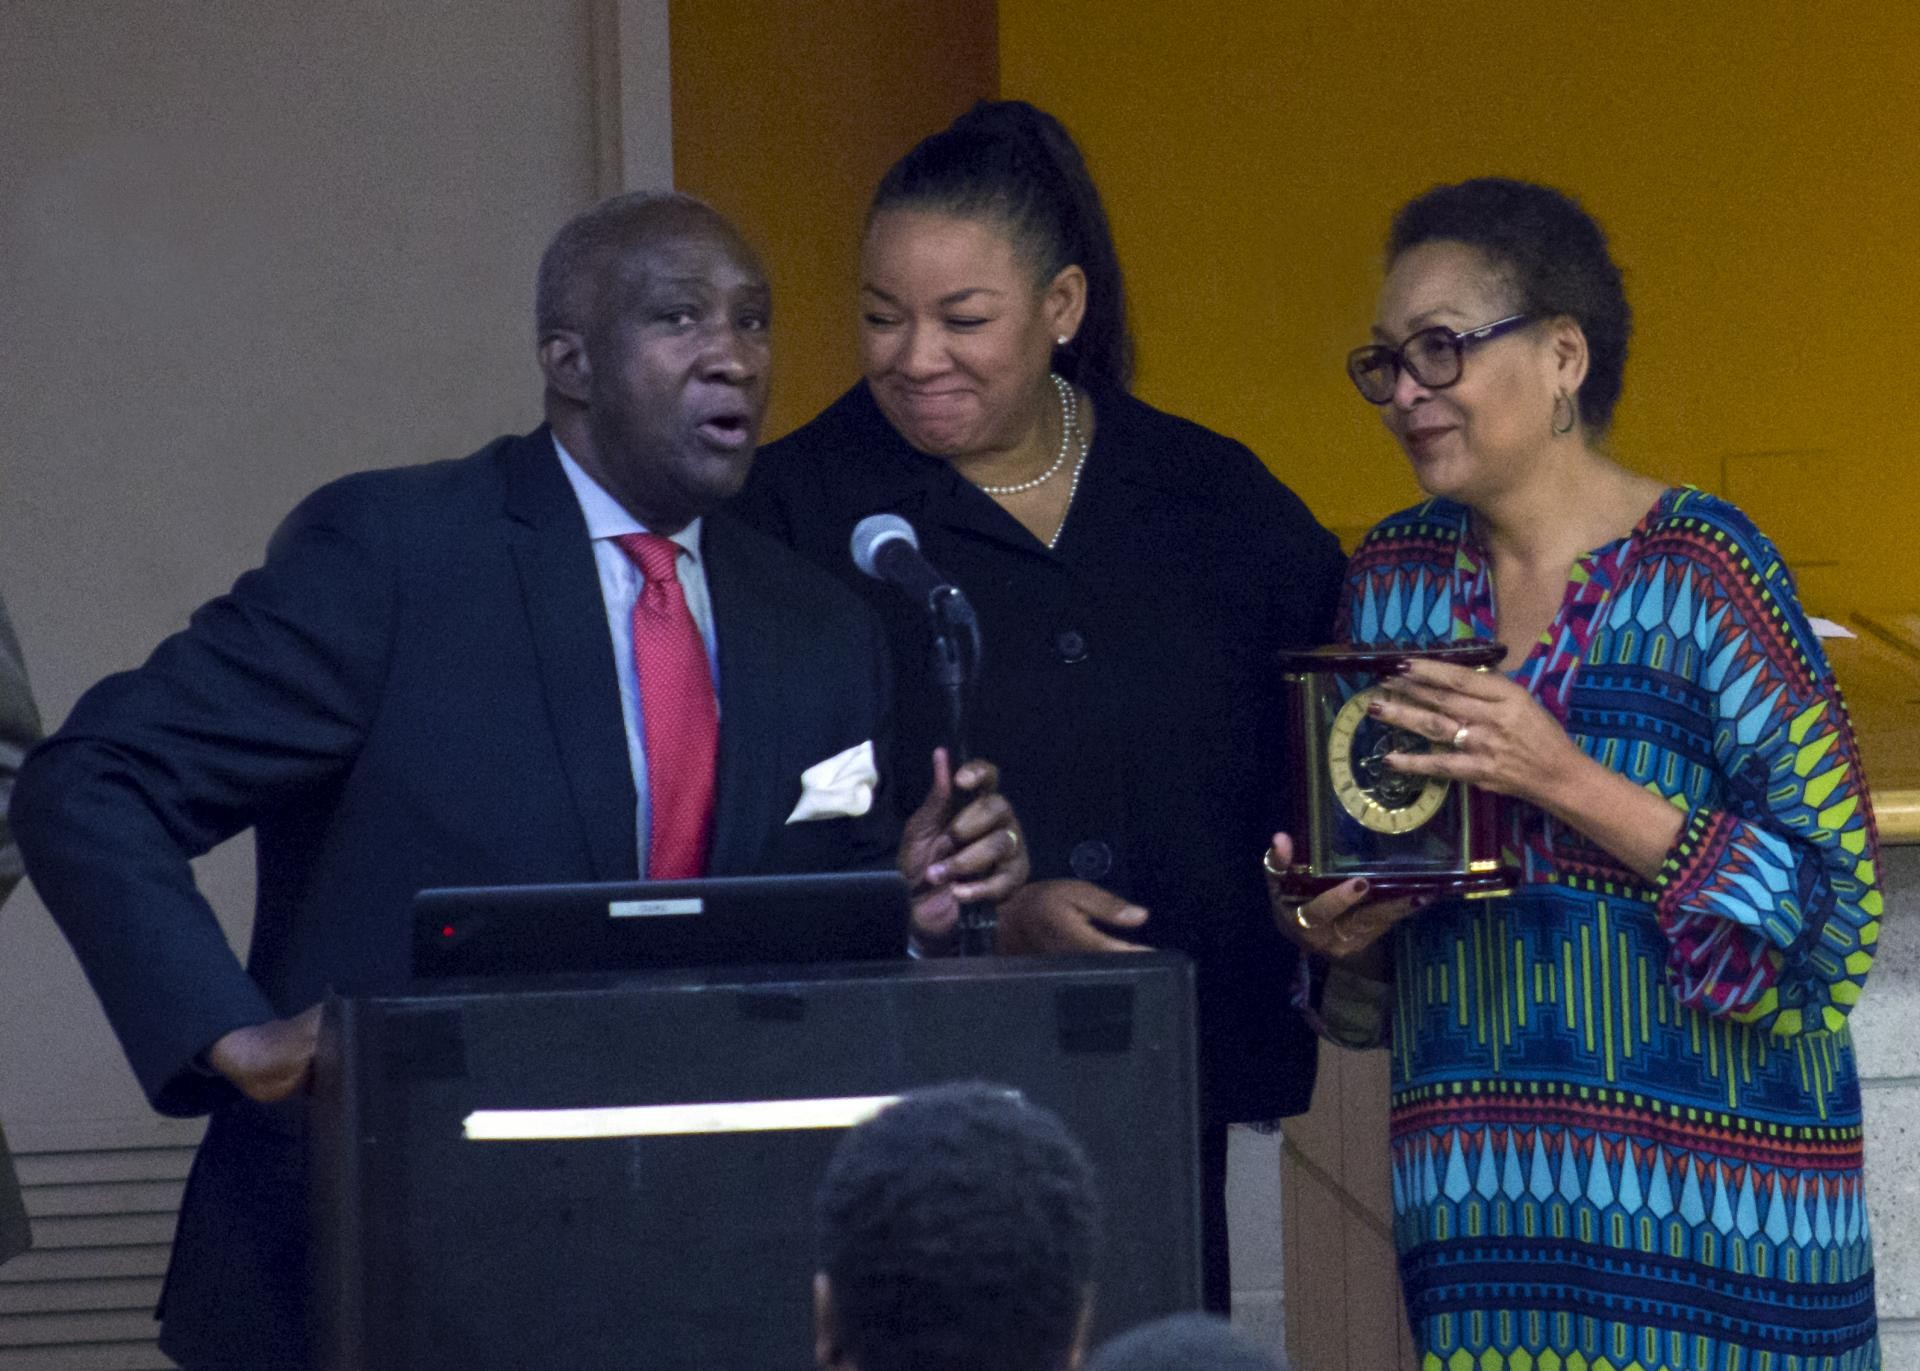 Lloyd Williams, president and CEO of the Greater Harlem Chamber of Commerce, presenting the Outstanding Professional Achievement Award to La-Verna Fountain (right).